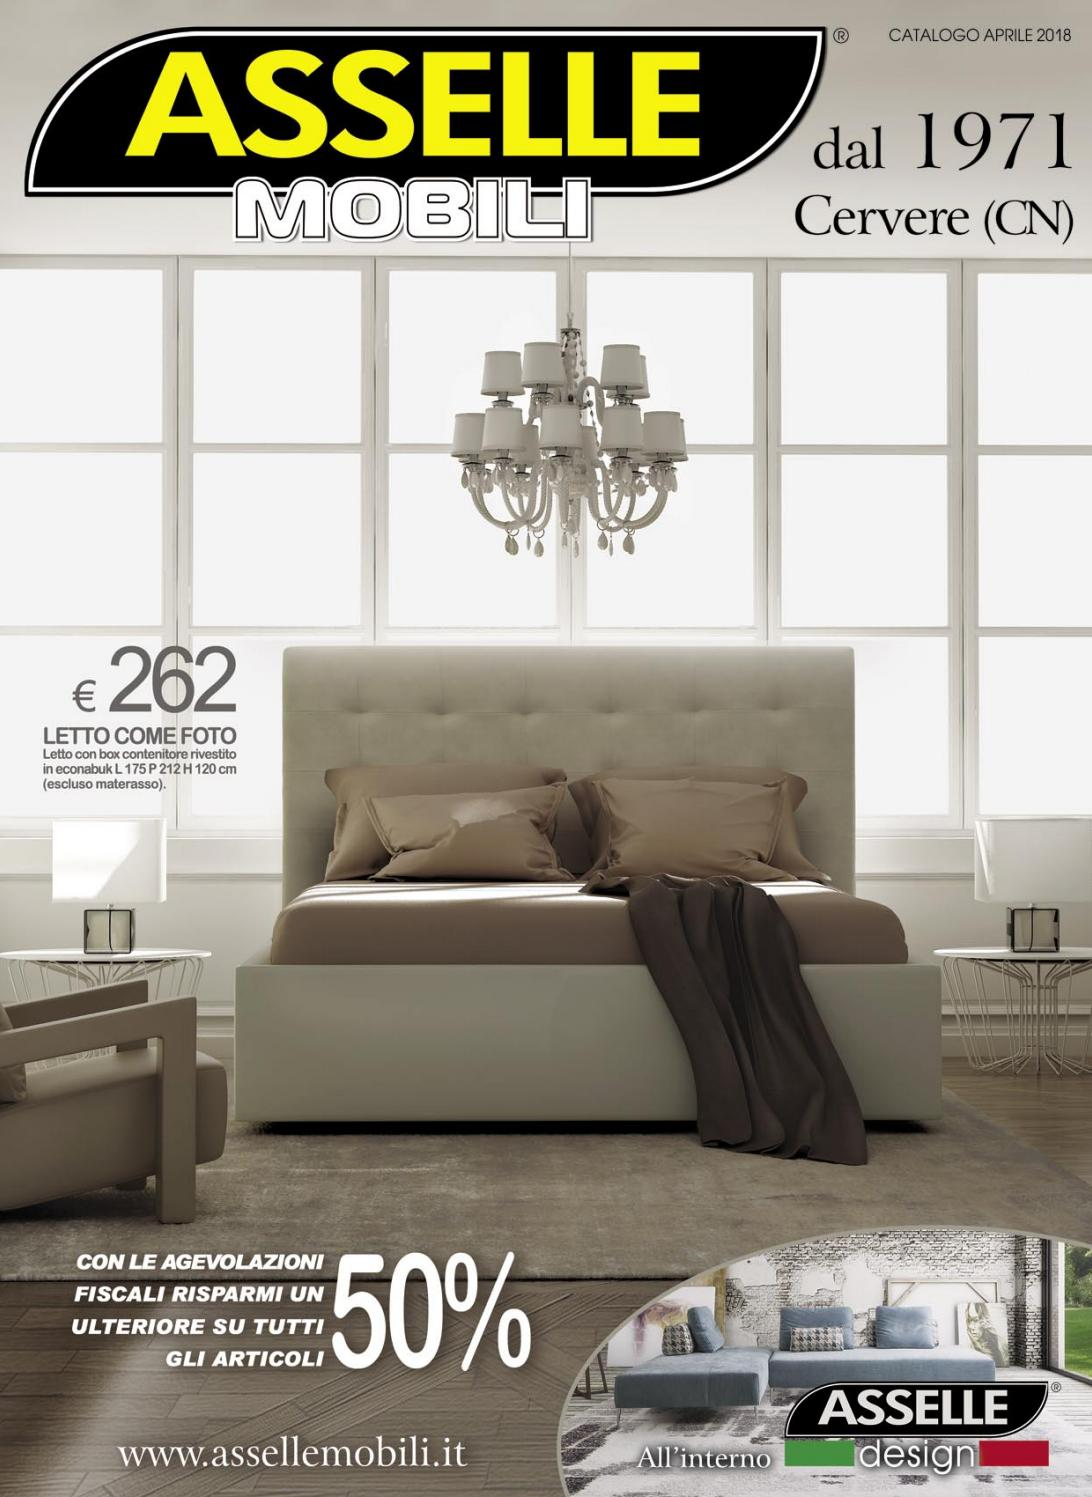 Asselle mobili catalogo aprile 2018 by asselle mobili issuu for Asselle soggiorni